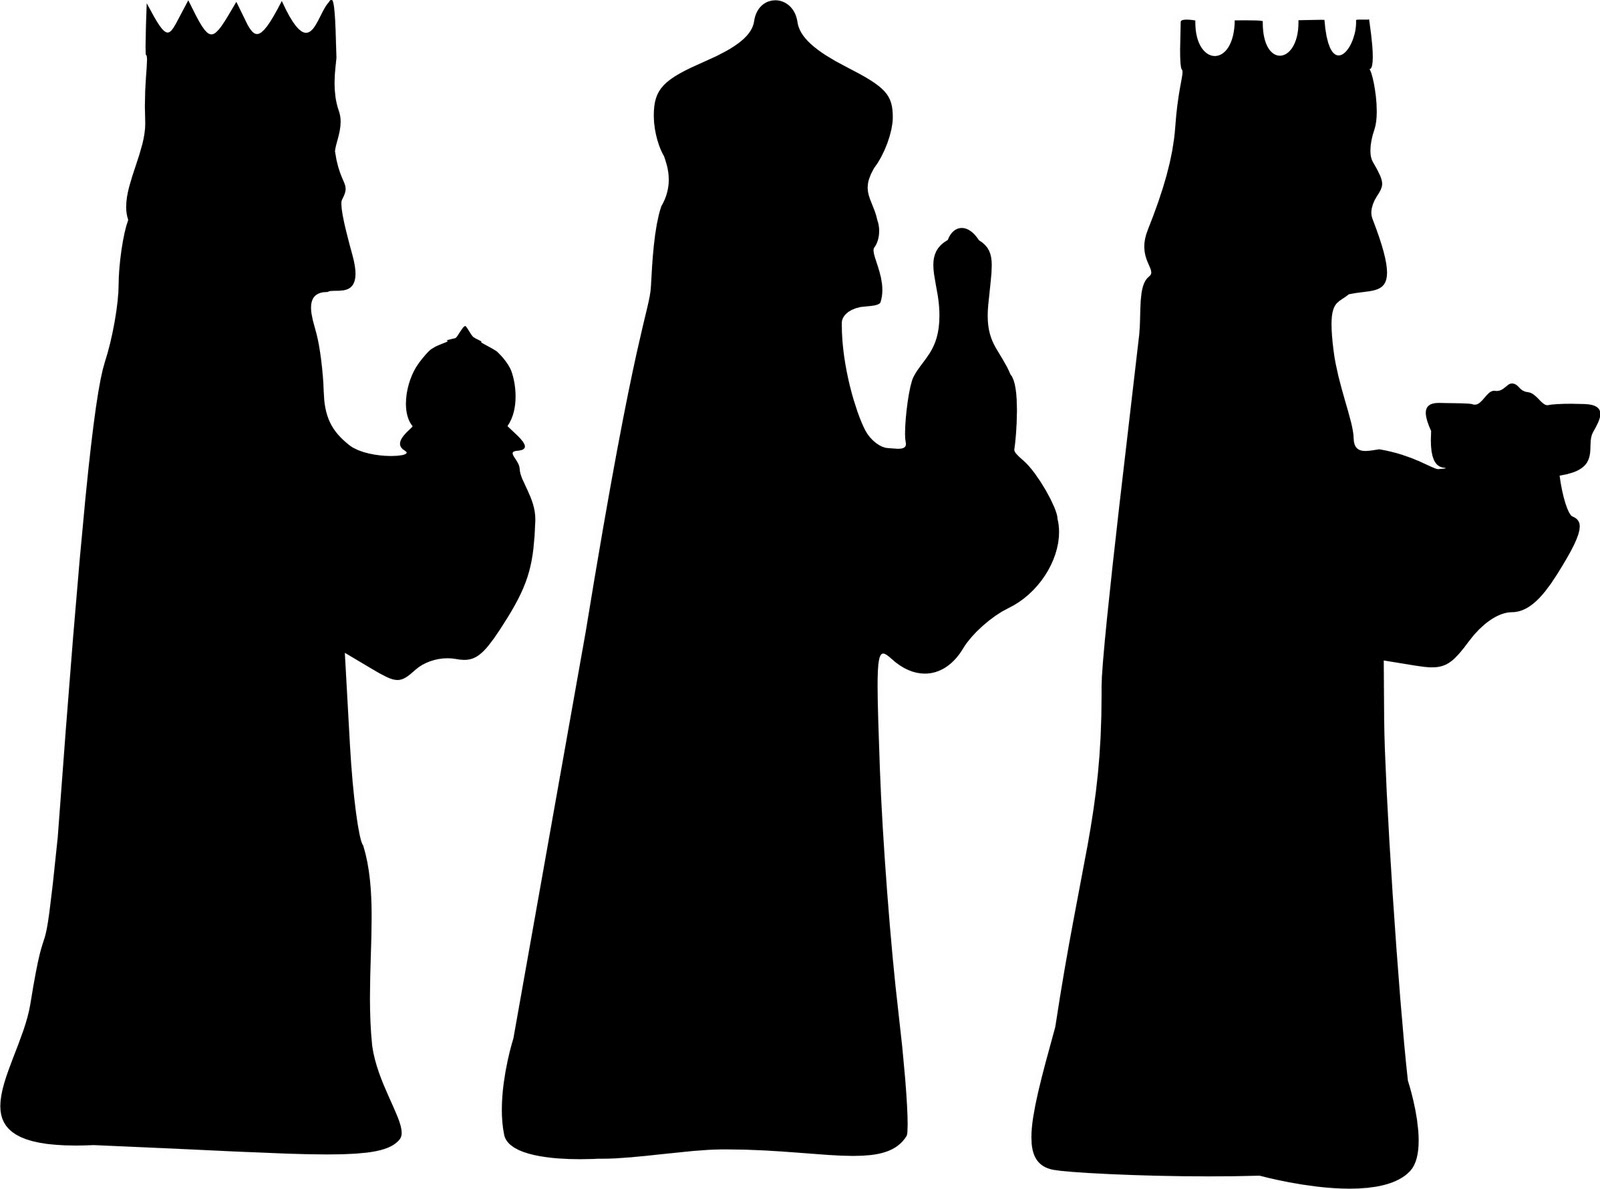 Free Three Wise Men Silhouette, Download Free Clip Art, Free.